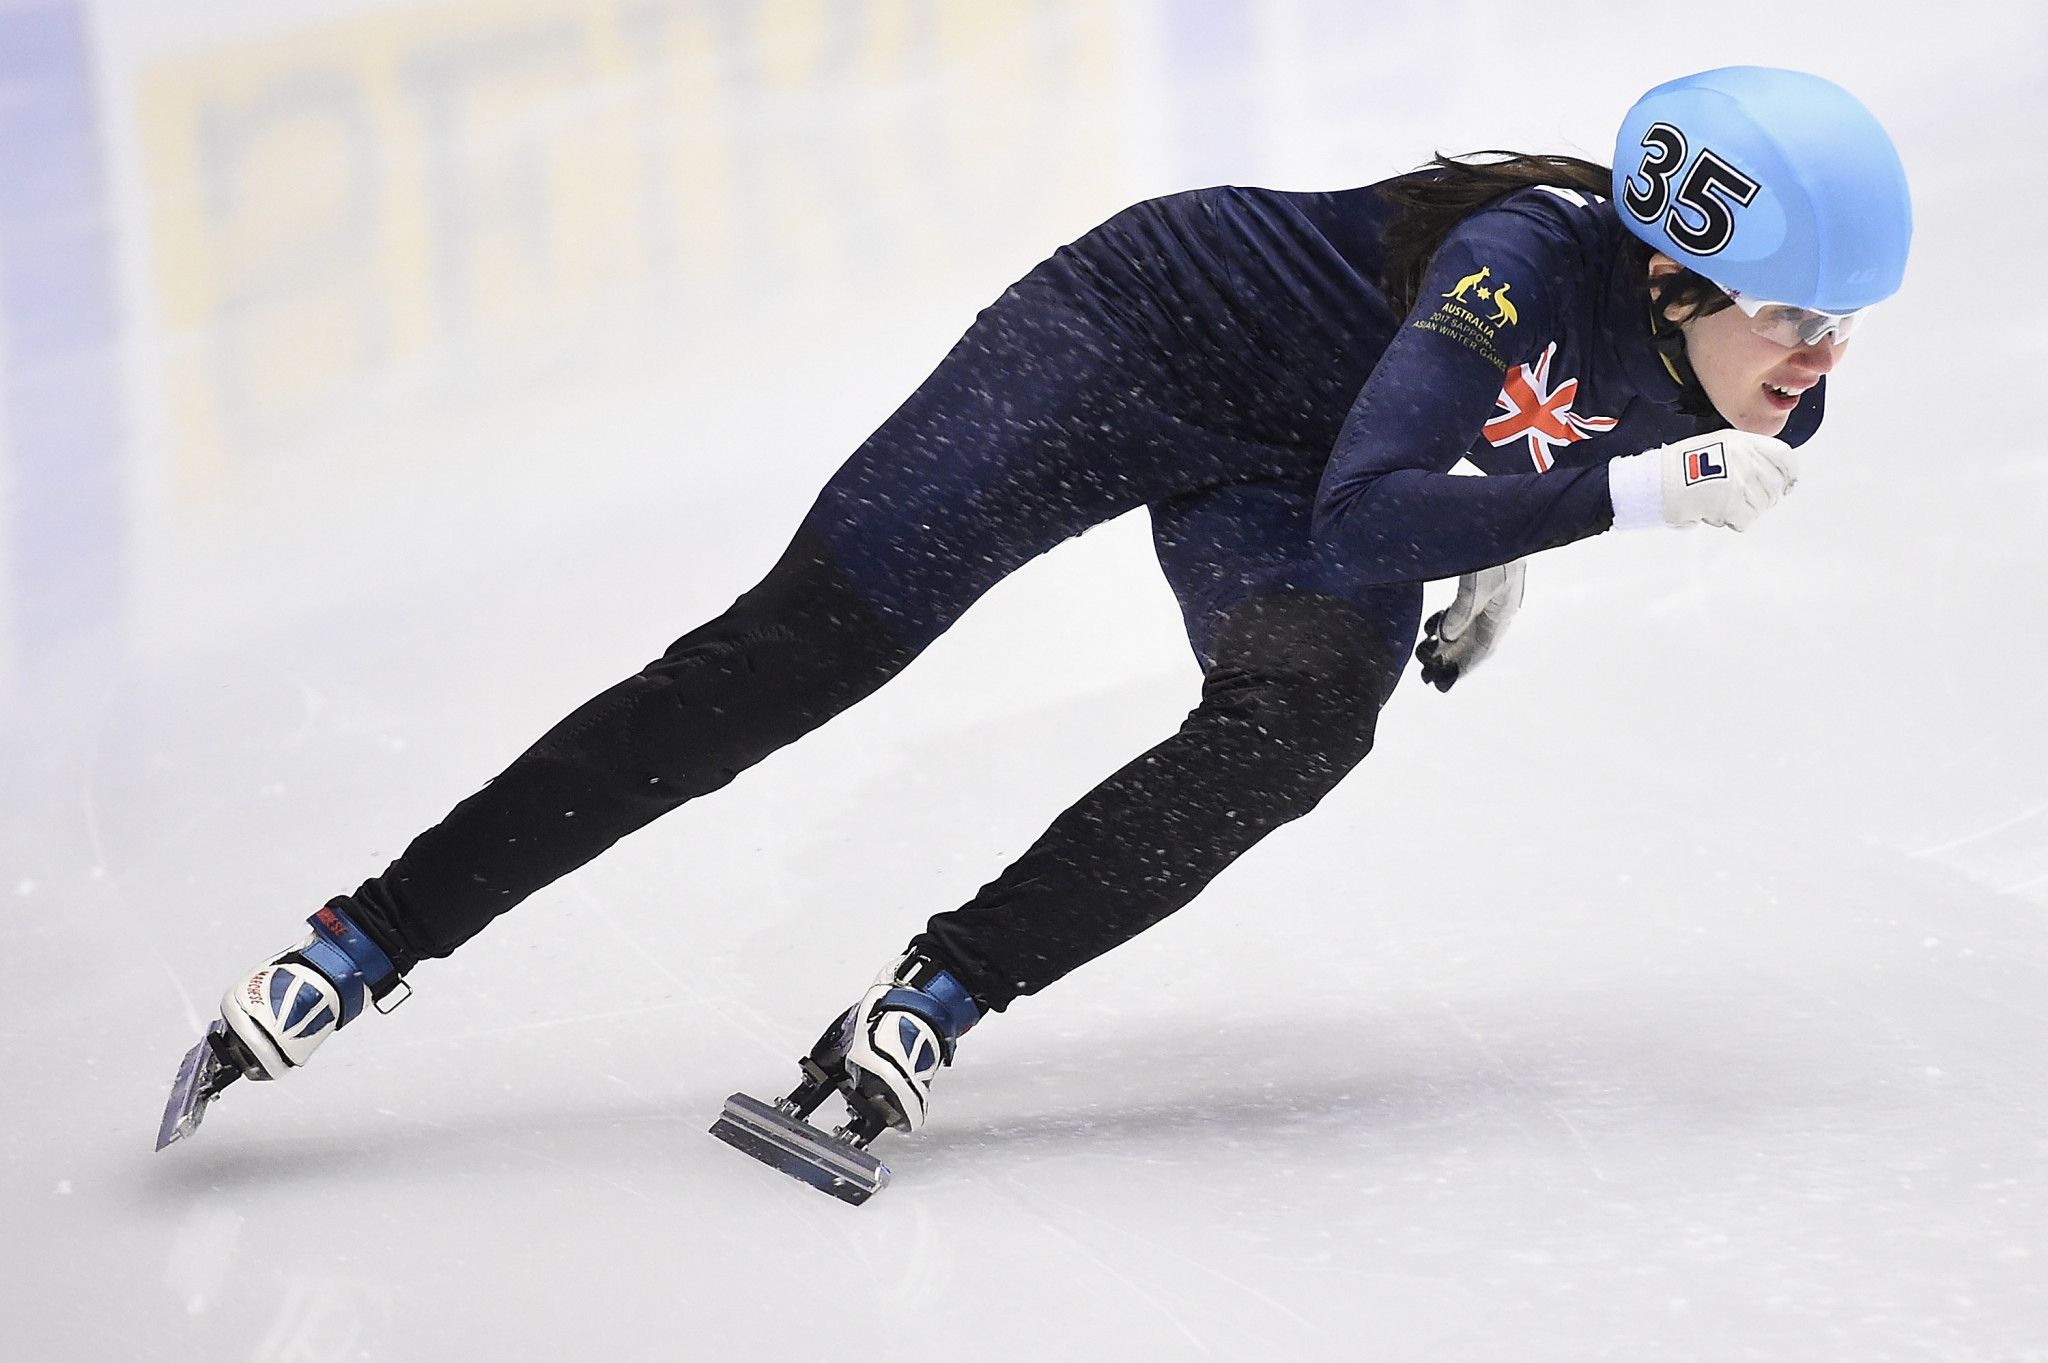 Short track speed skaters Lockett and Jung added to Australia team for Pyeongchang 2018